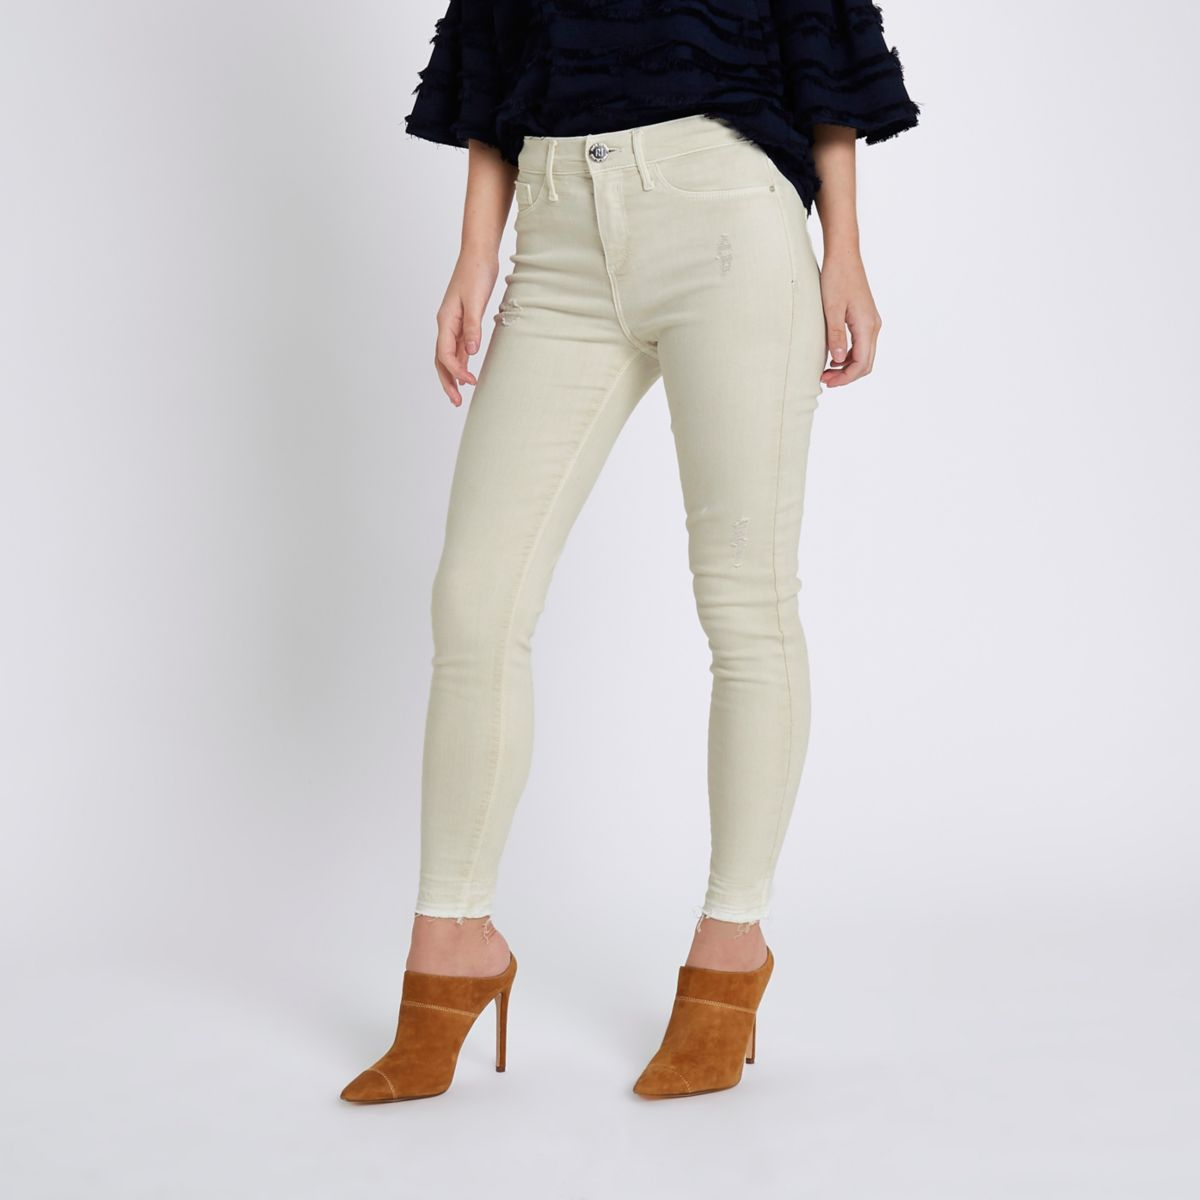 Petite cream Molly skinny jeggings